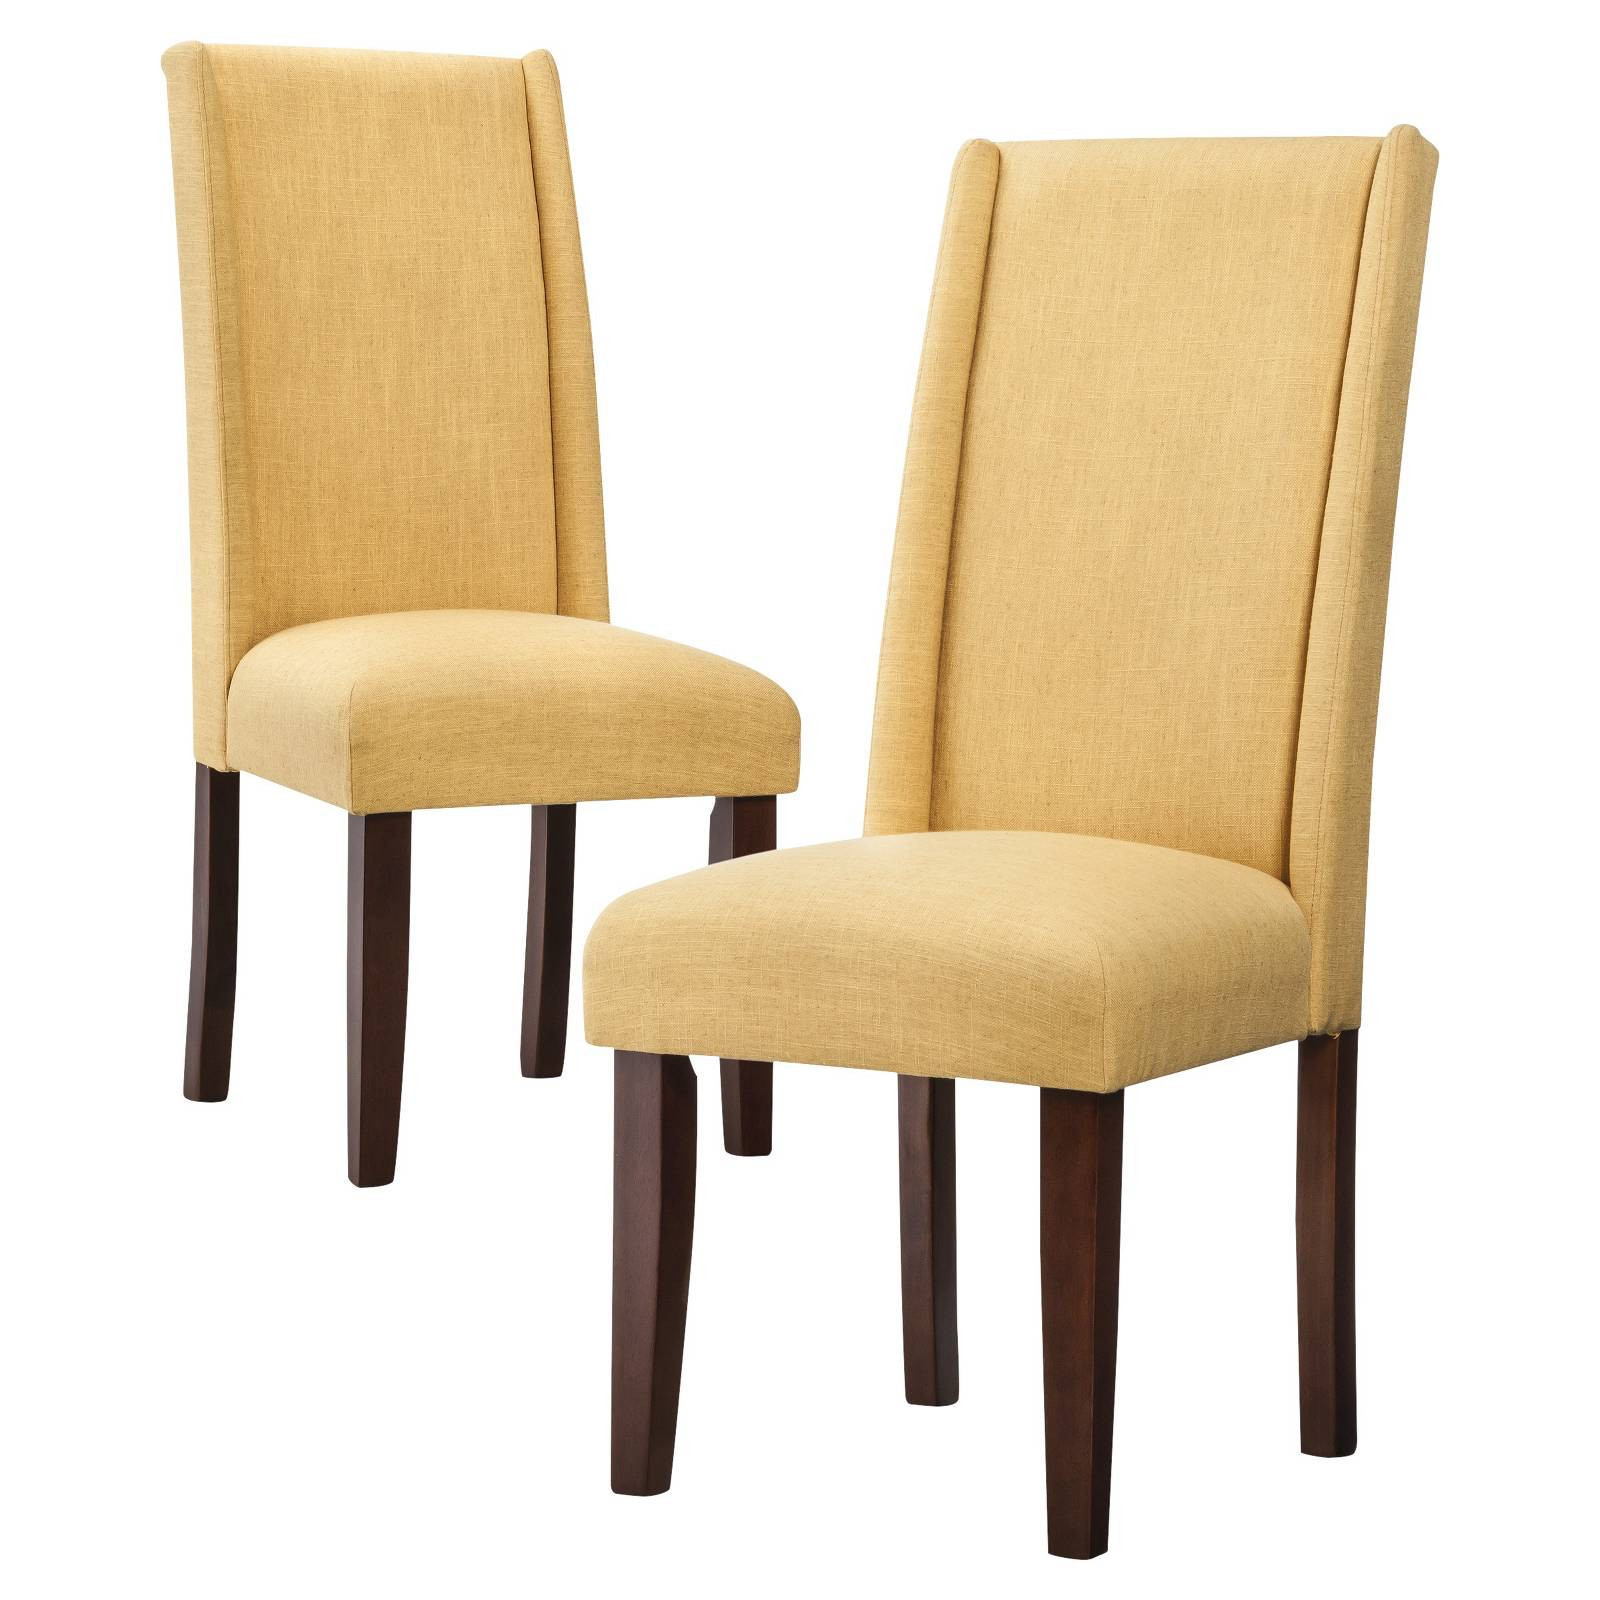 Best ideas about Wingback Dining Chair . Save or Pin Charlie Modern Wingback Dining Chair Set of 2 Now.